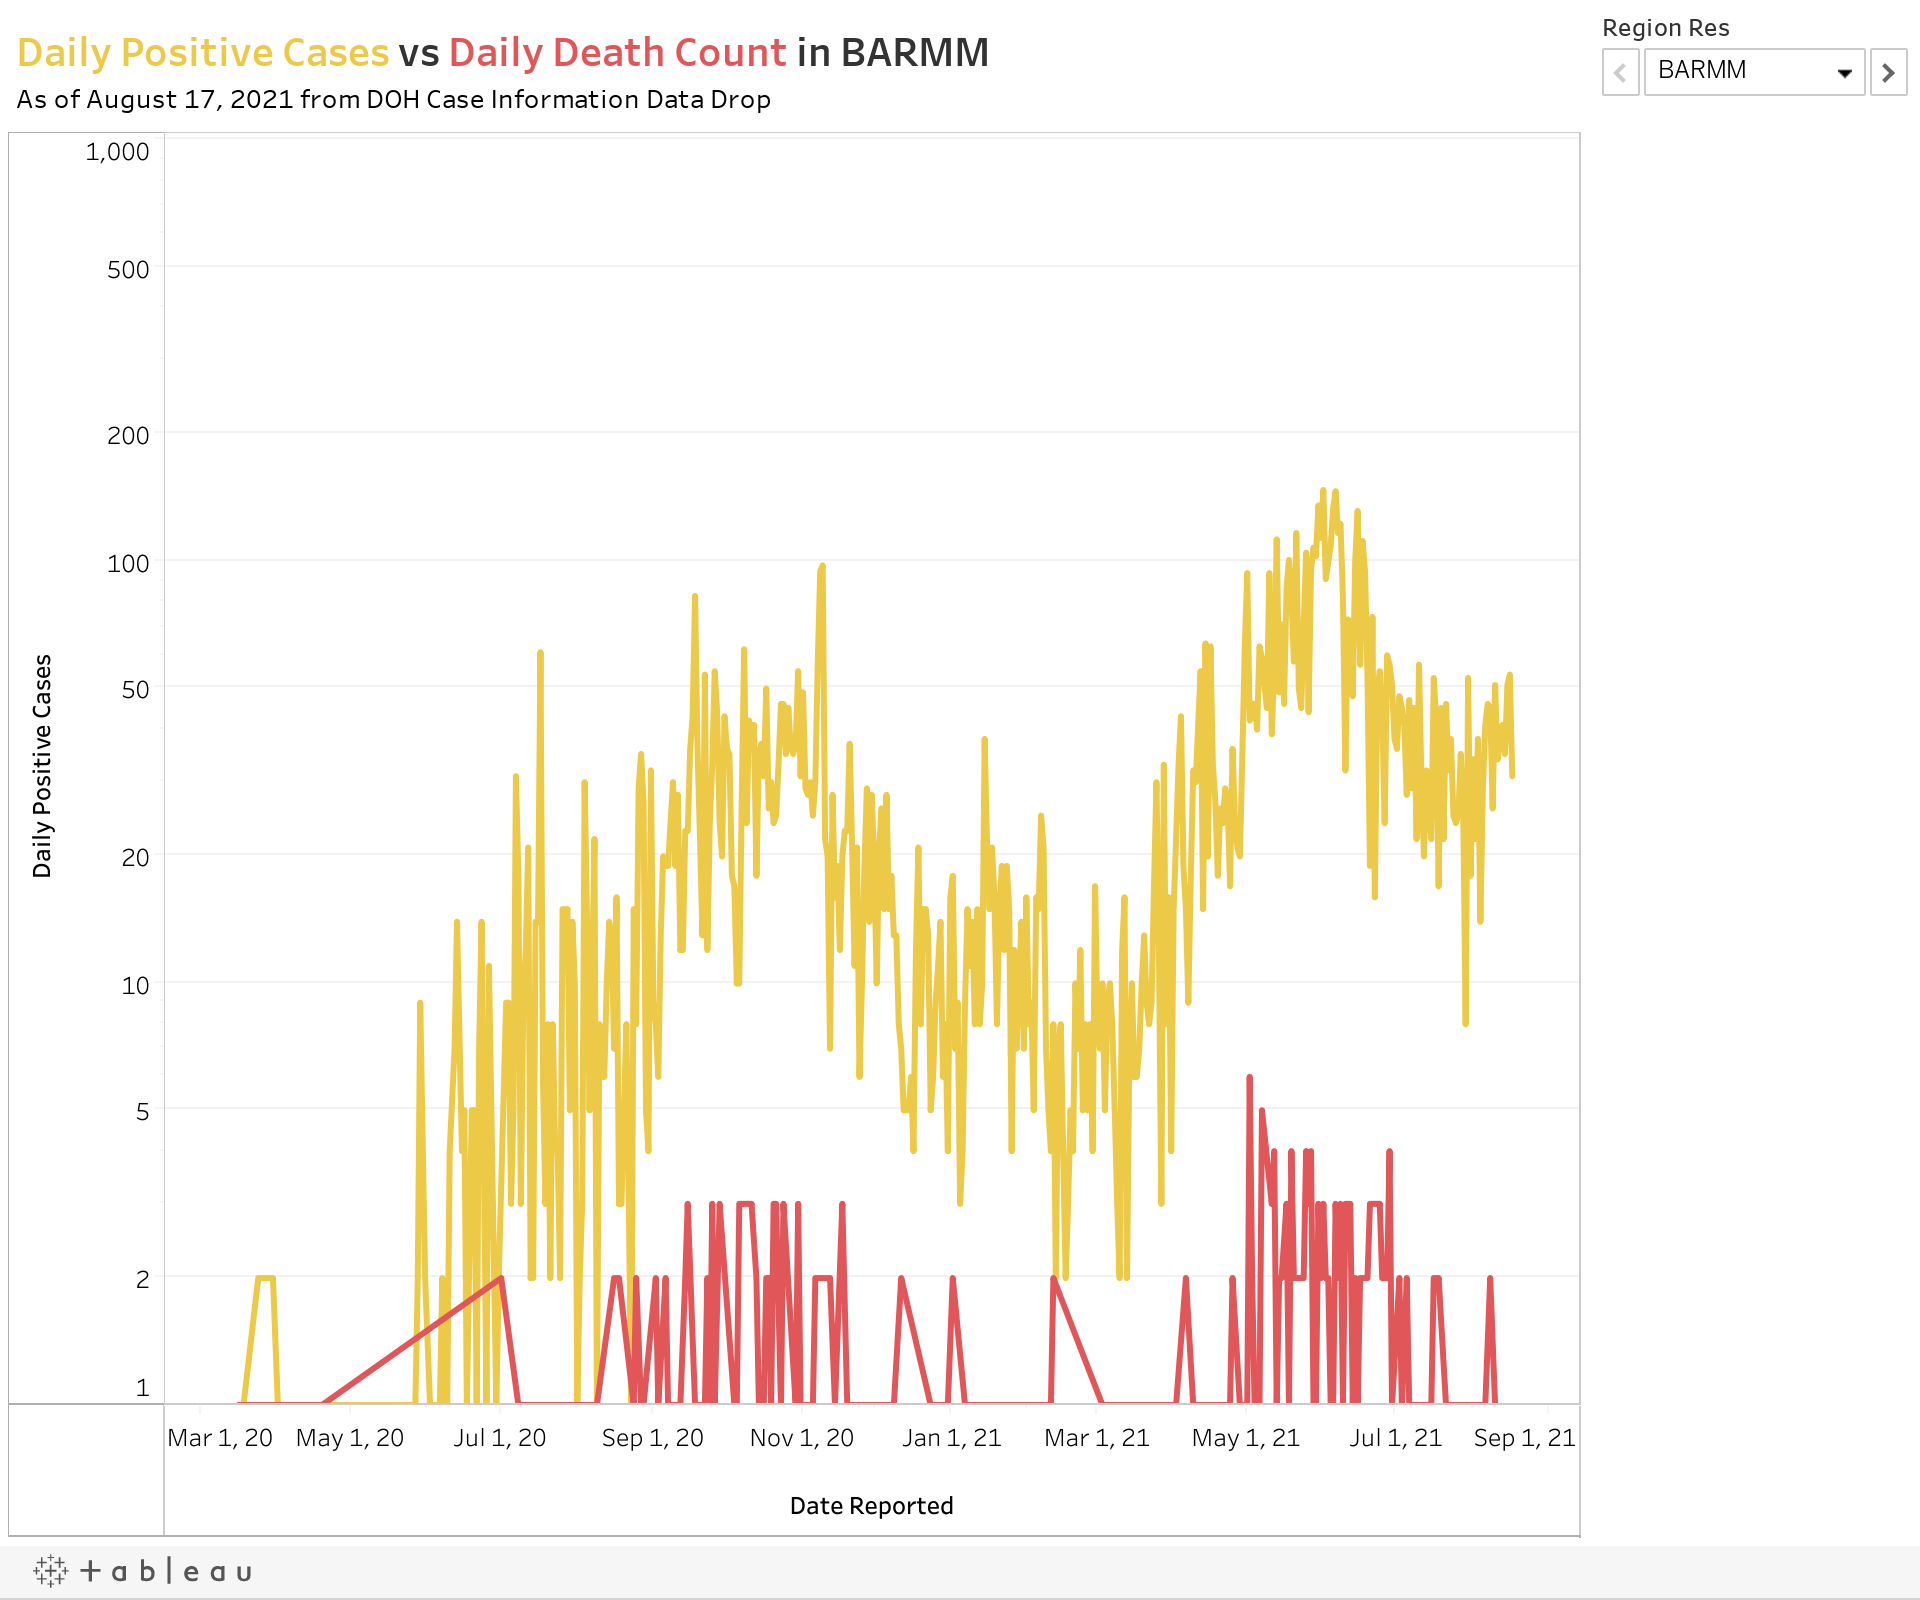 Daily Positive Cases vs Daily Death Count in BARMMAs of August 3, 2021 from DOH Case Information Data Drop